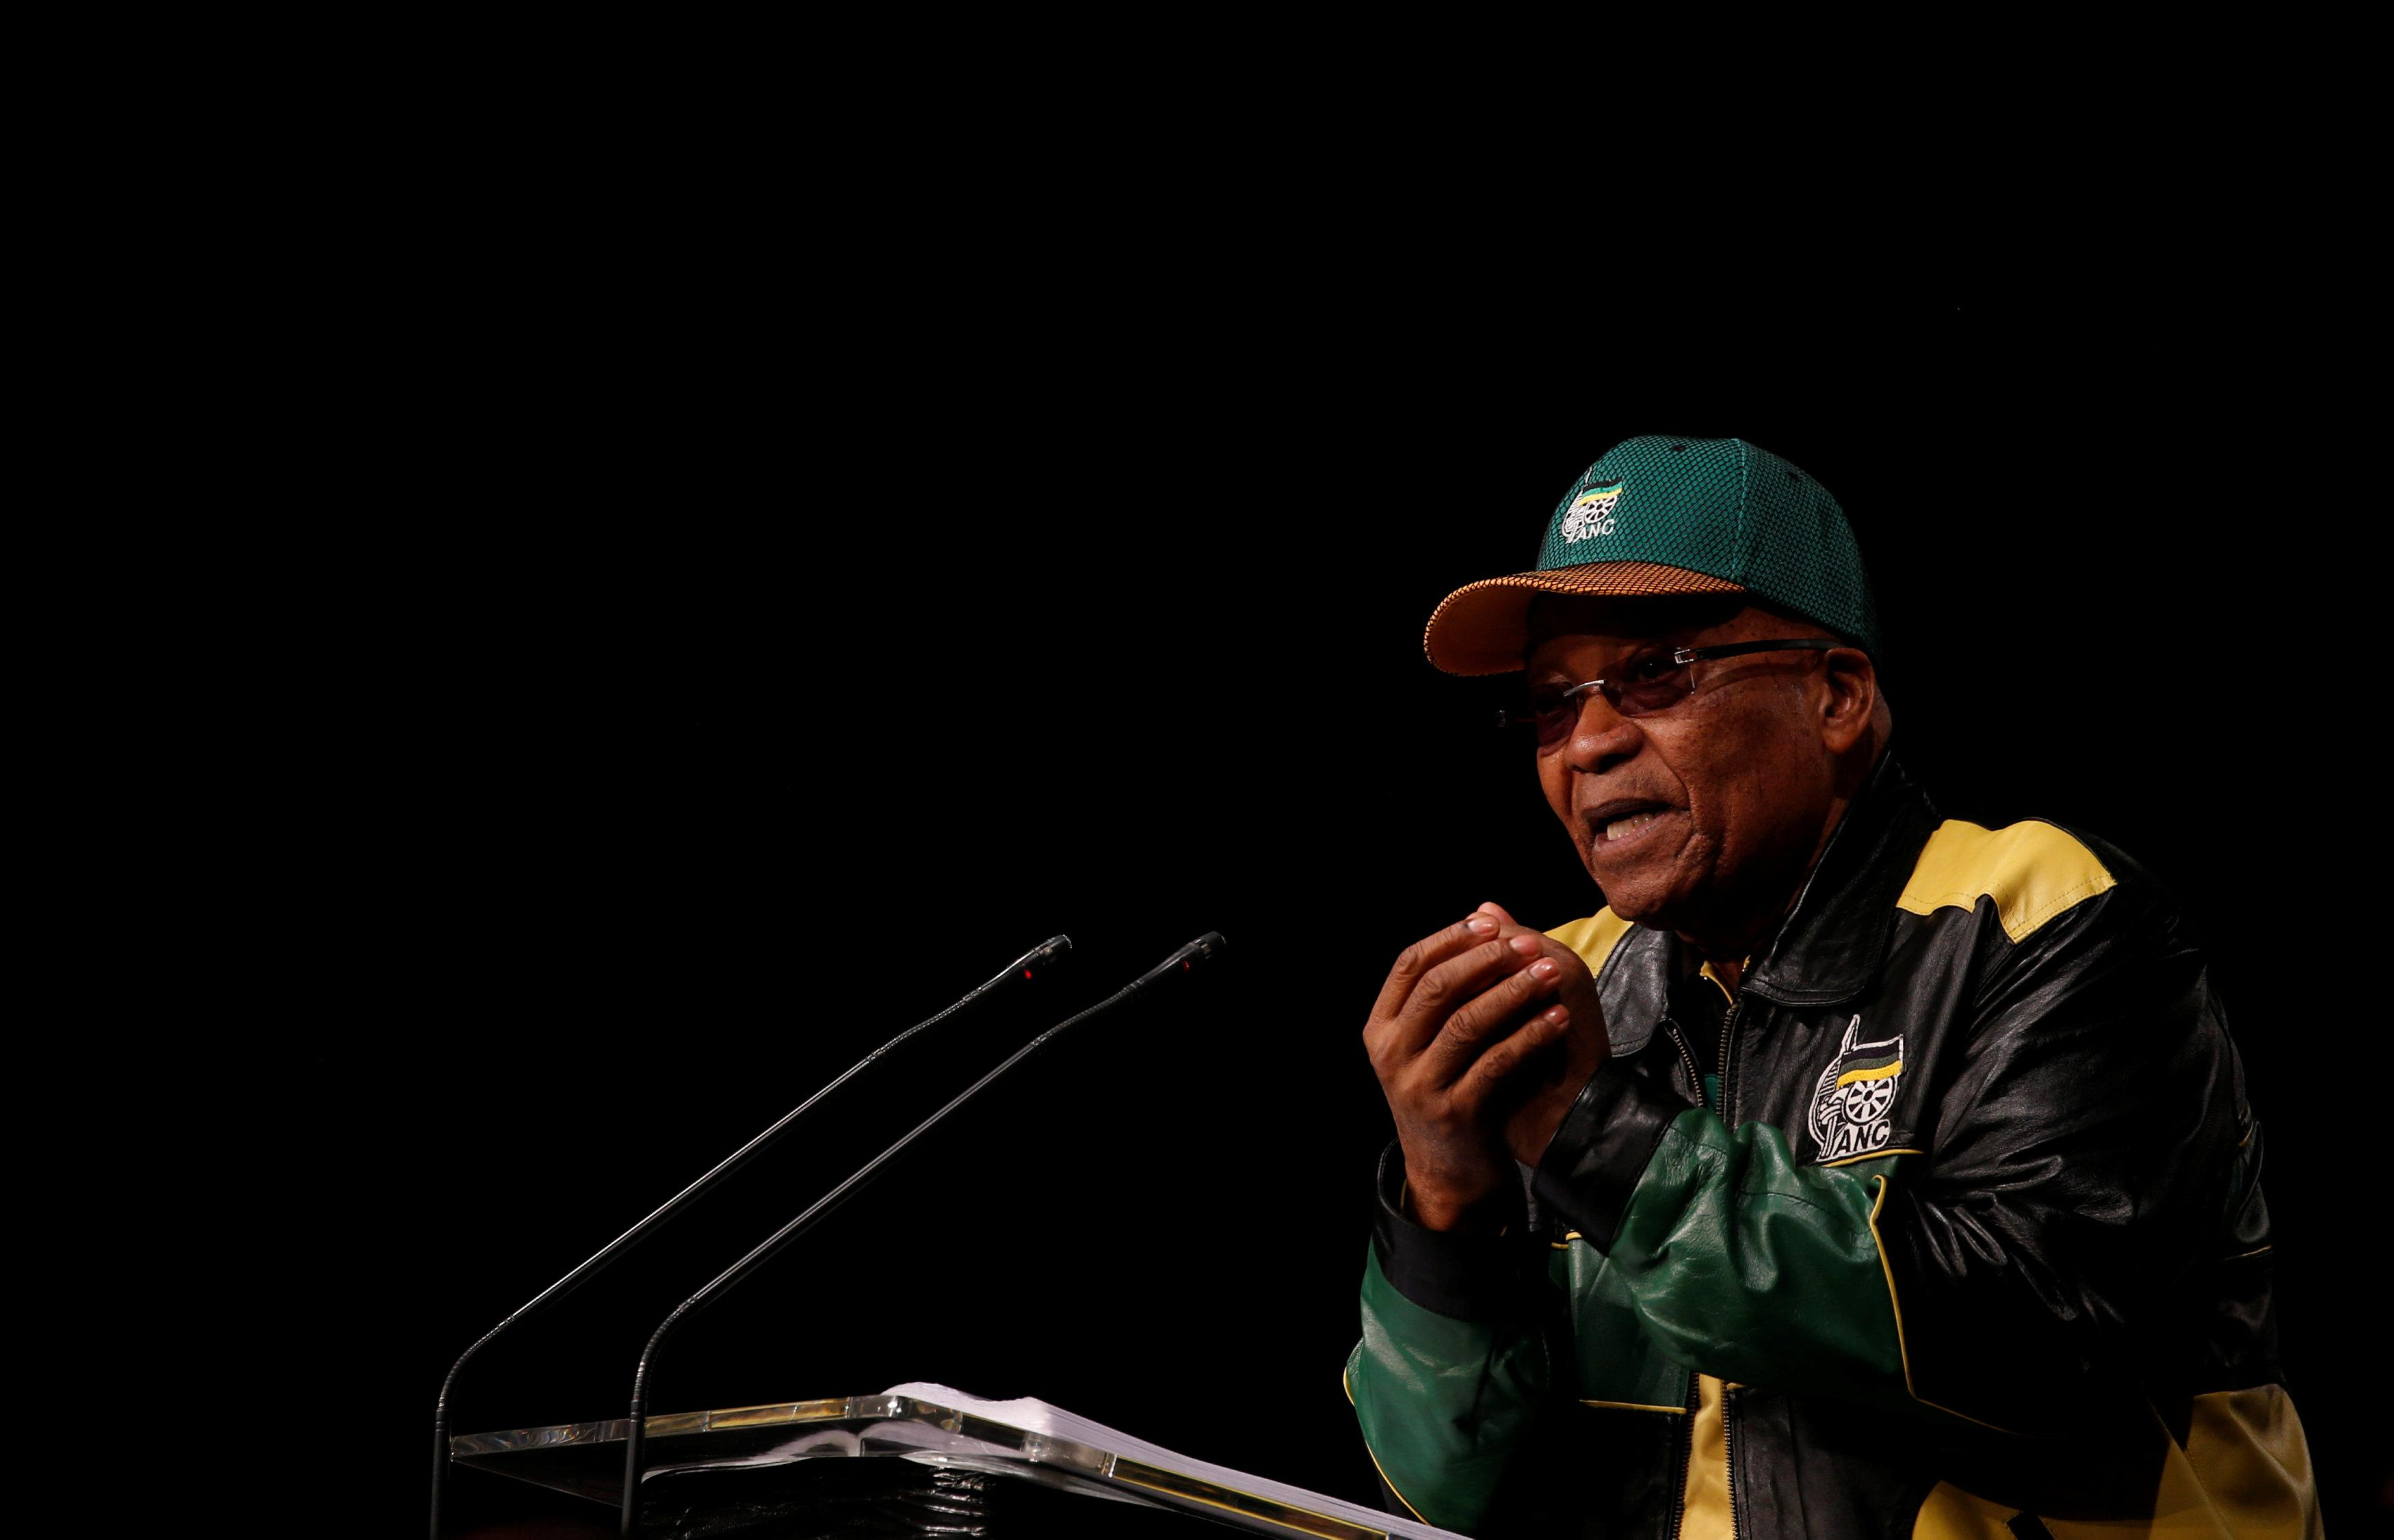 South Africa's President Jacob Zuma gestures during the last day of the six-day meeting of the African National Congress 5th National Policy Conference at the Nasrec Expo Centre in Soweto, South Africa, July 5, 2017. Siphiwe Sibeko